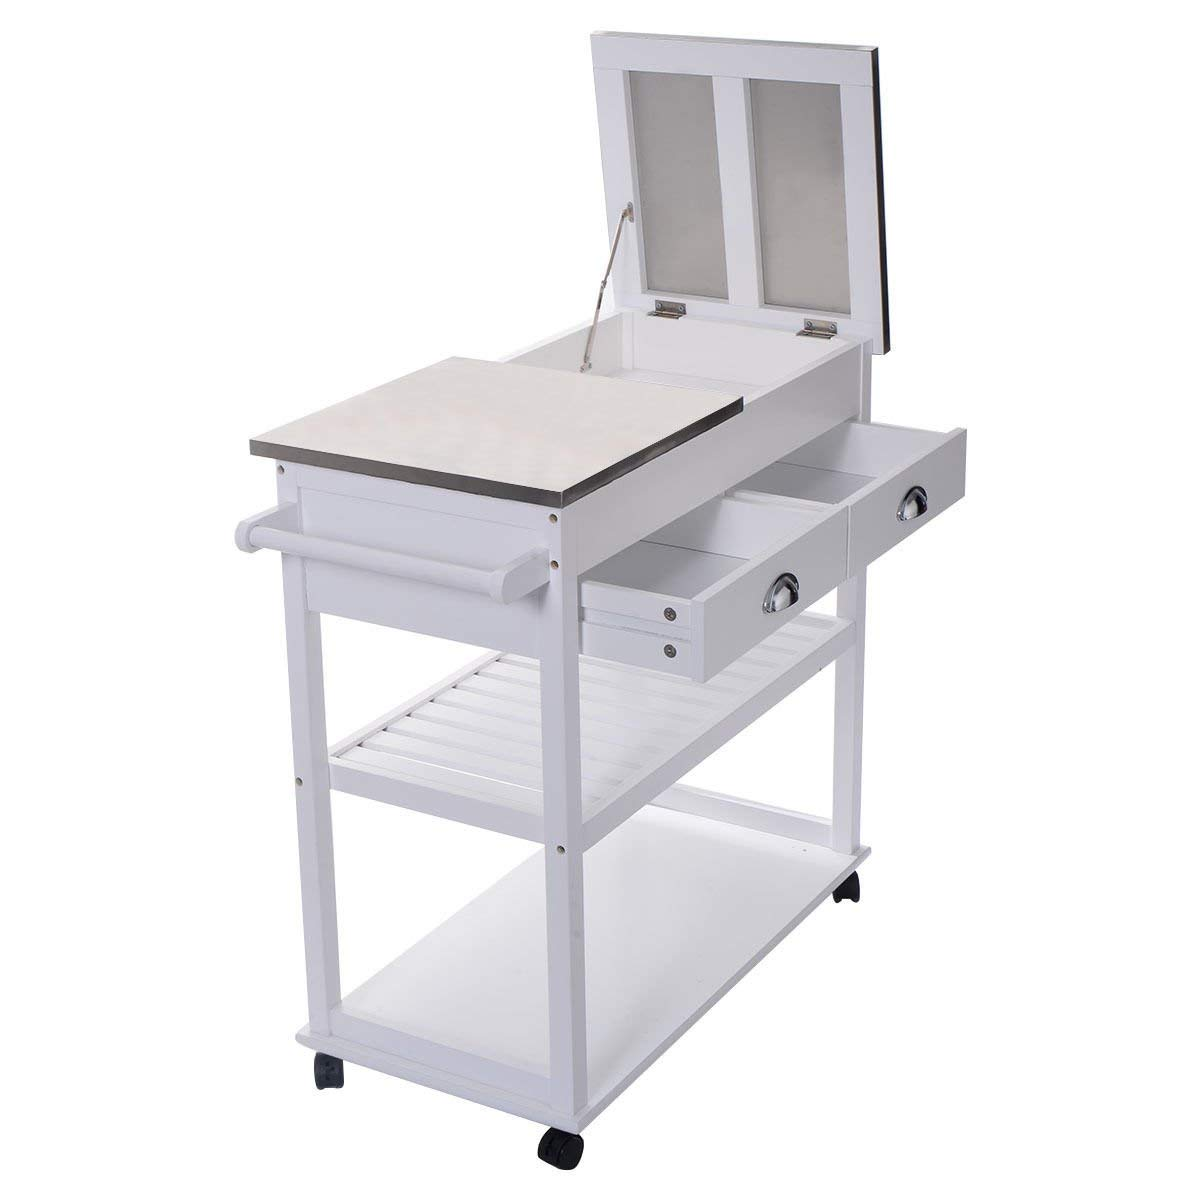 "34.2"" White Rolling Kitchen Stainless Steel-Flip Top Cart Trolley w/ 2 Shelves"